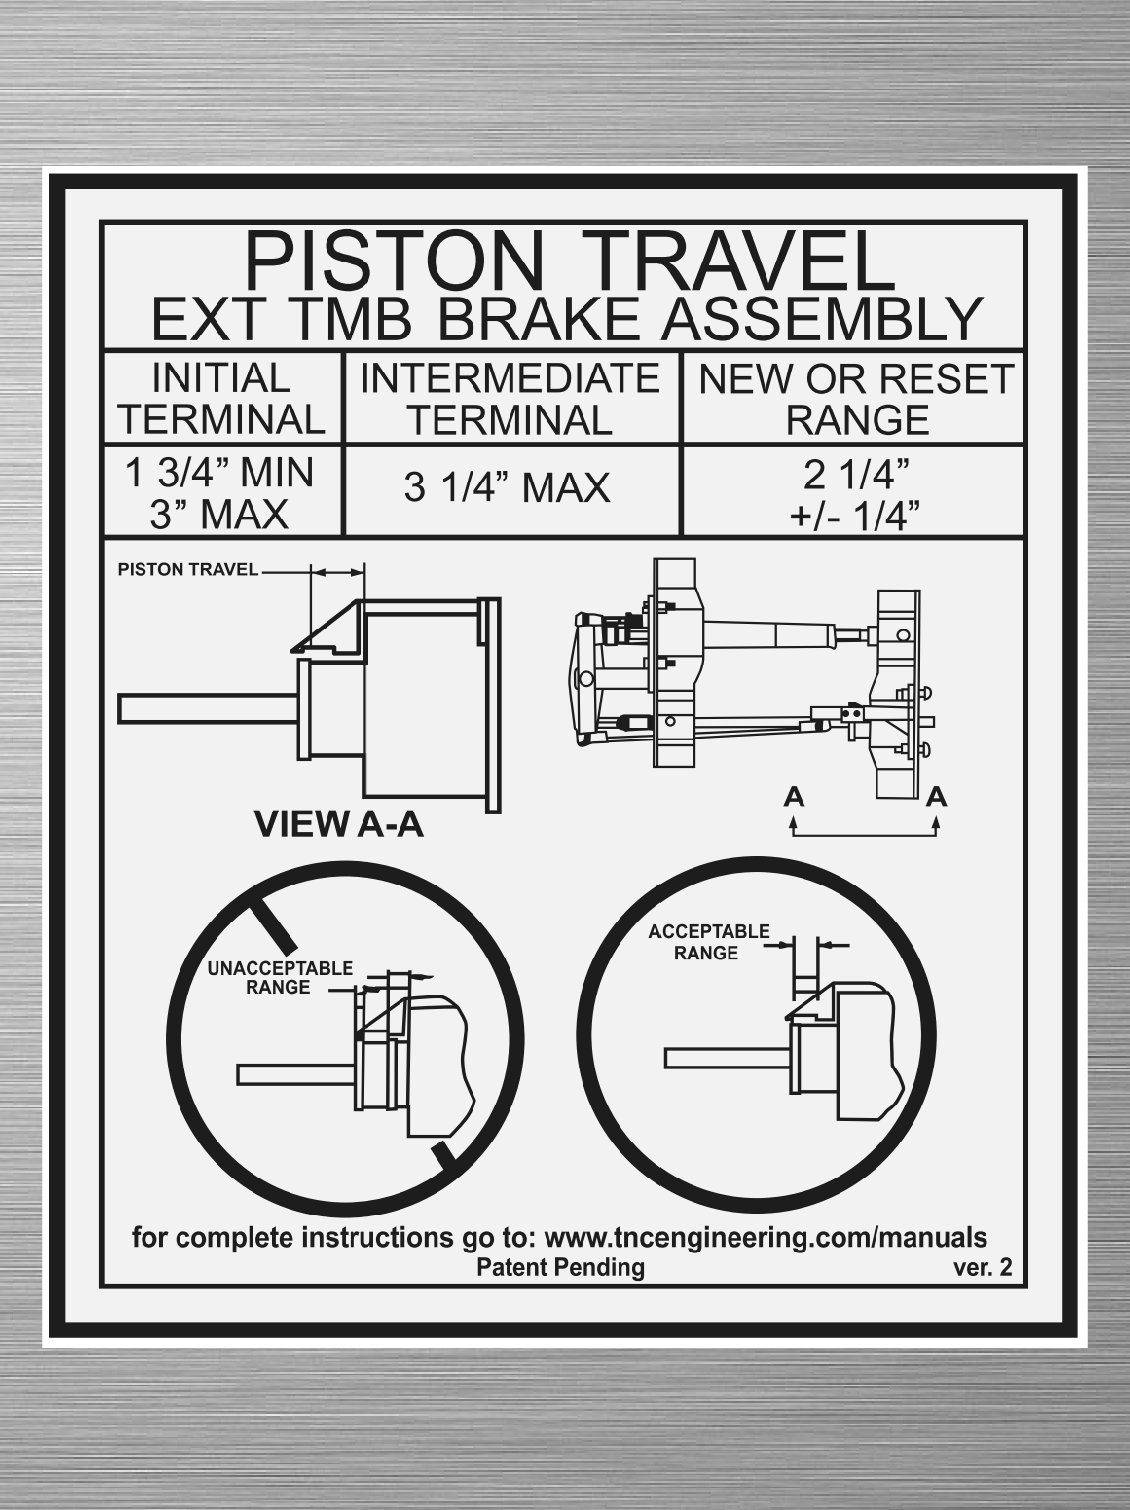 Piston Travel Decal -  EXT TMB Brake Assembly